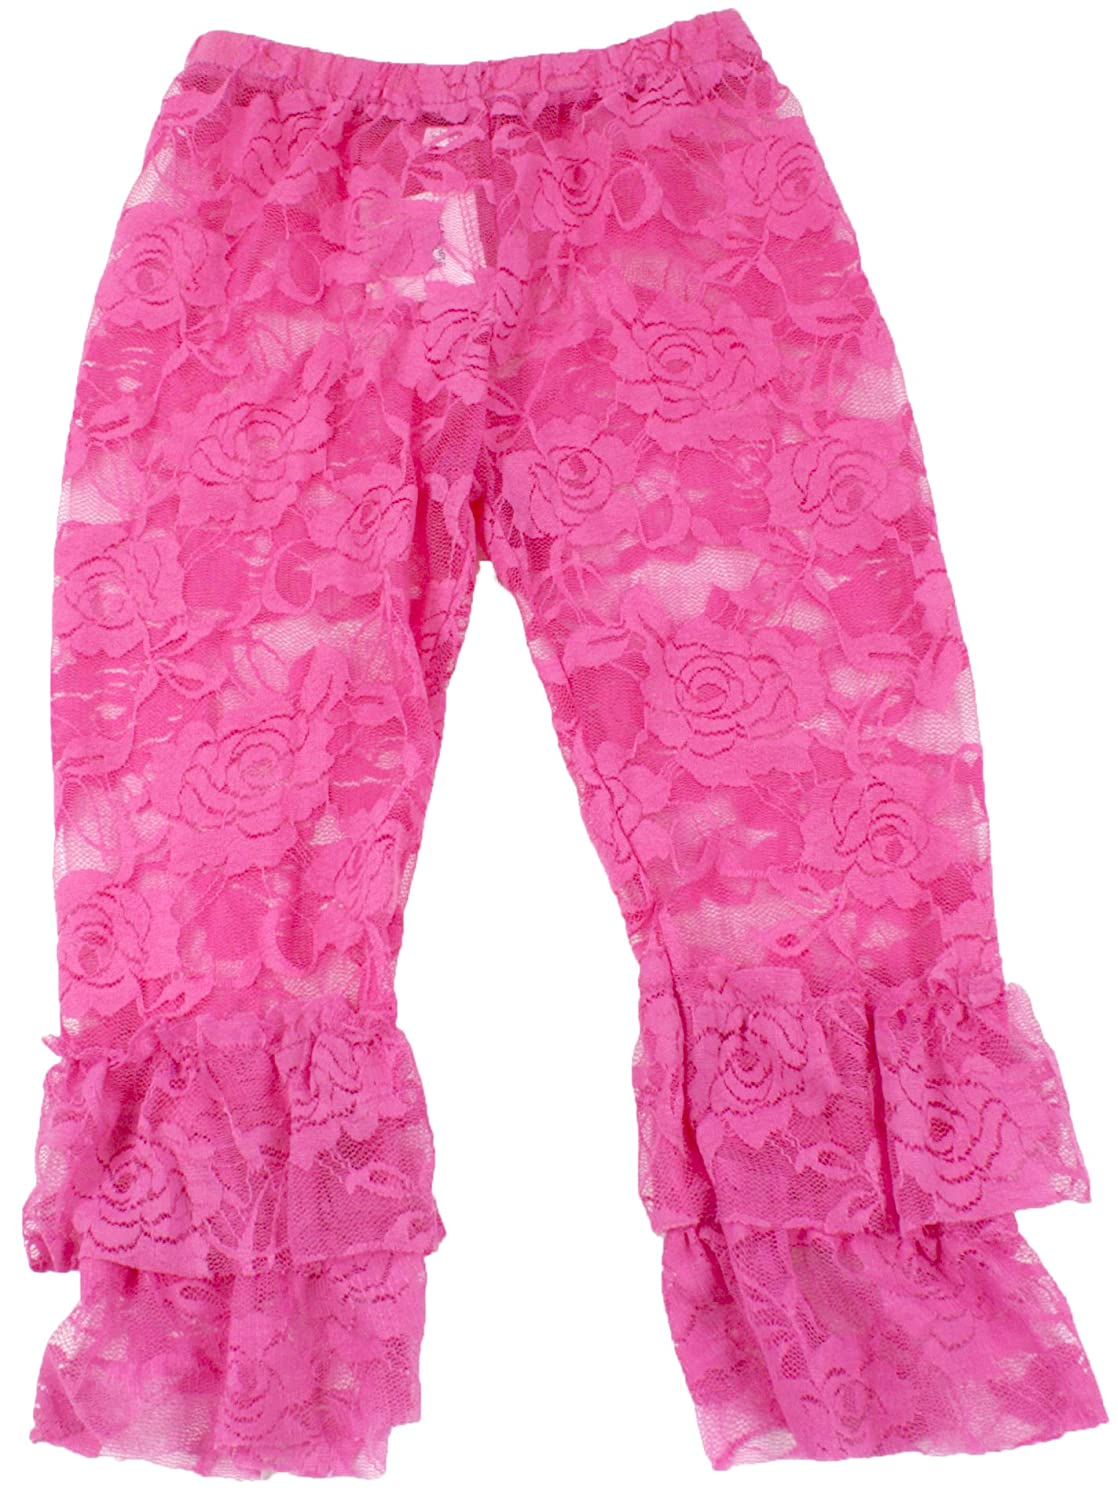 Ruffle Bottom Lace Leggings Infant , Hot Pink 12-24 Months